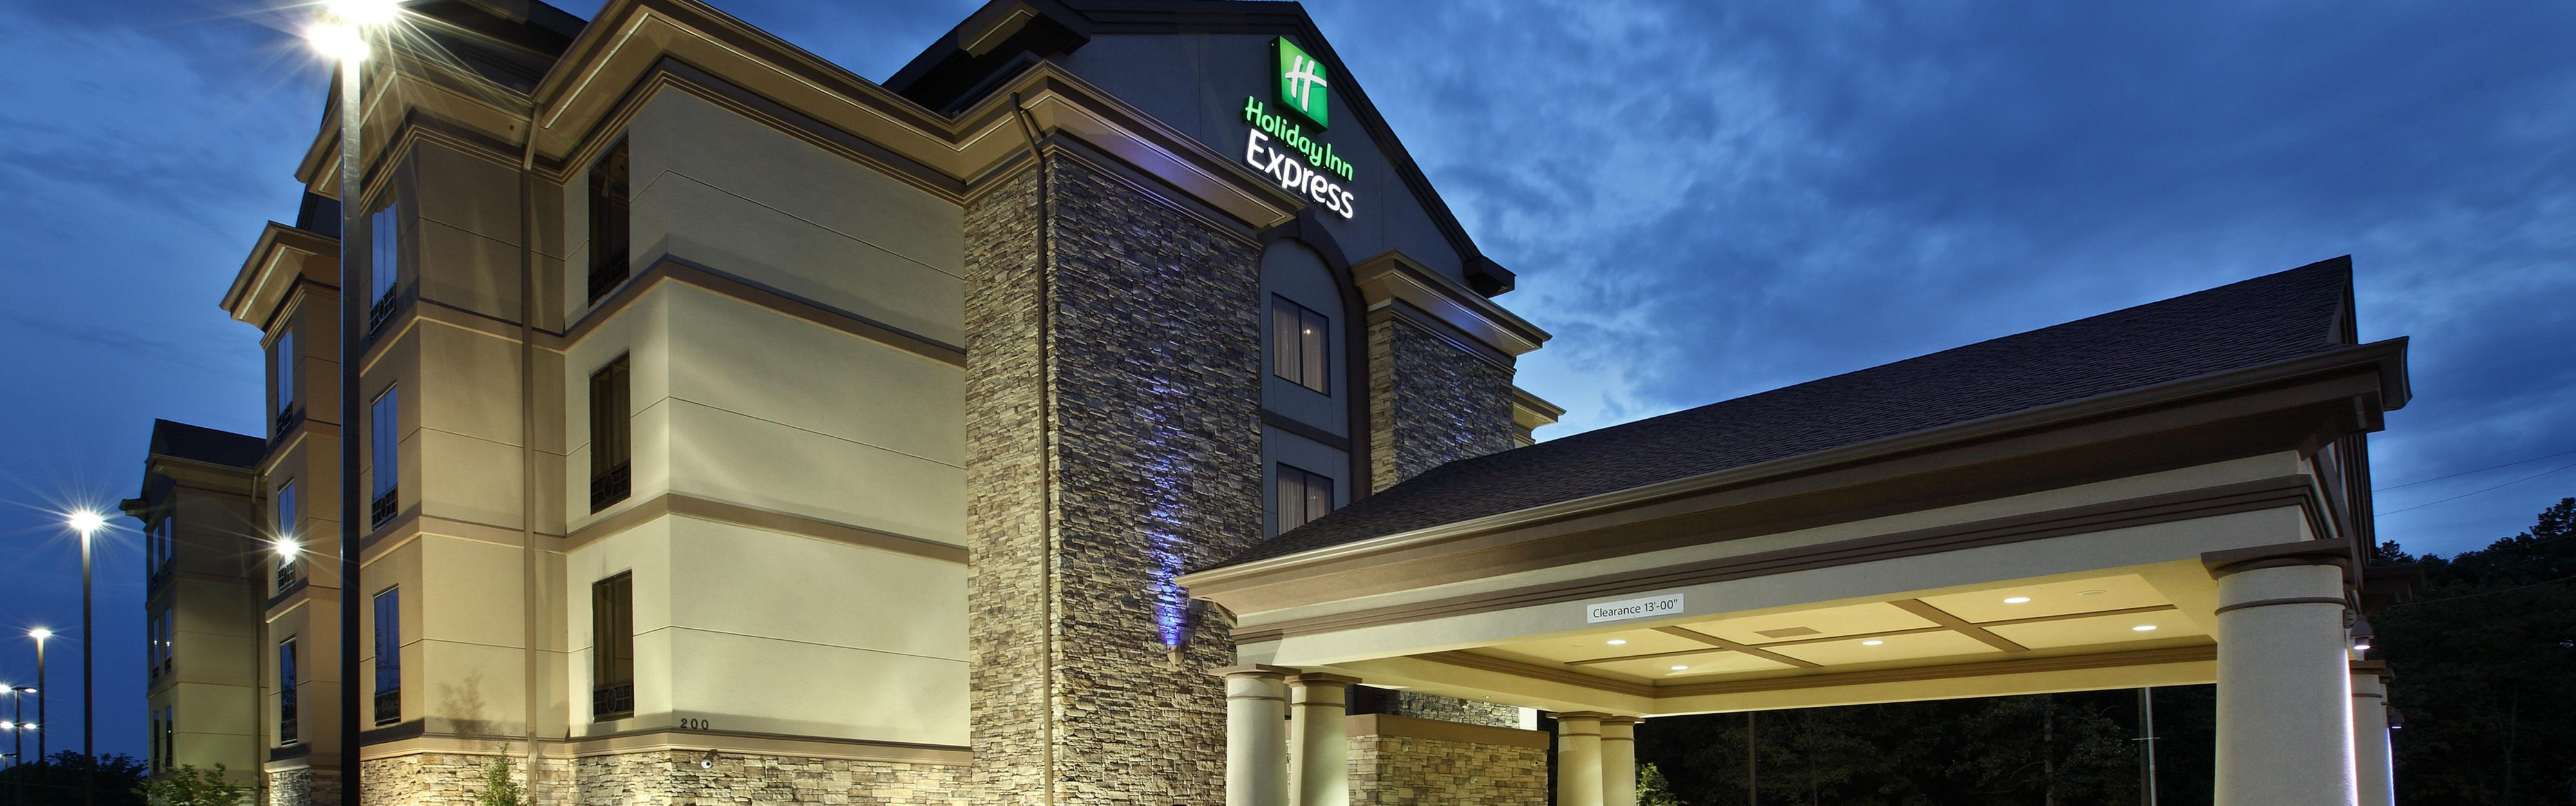 Holiday Inn Express & Suites Maumelle - Little Rock NW image 0